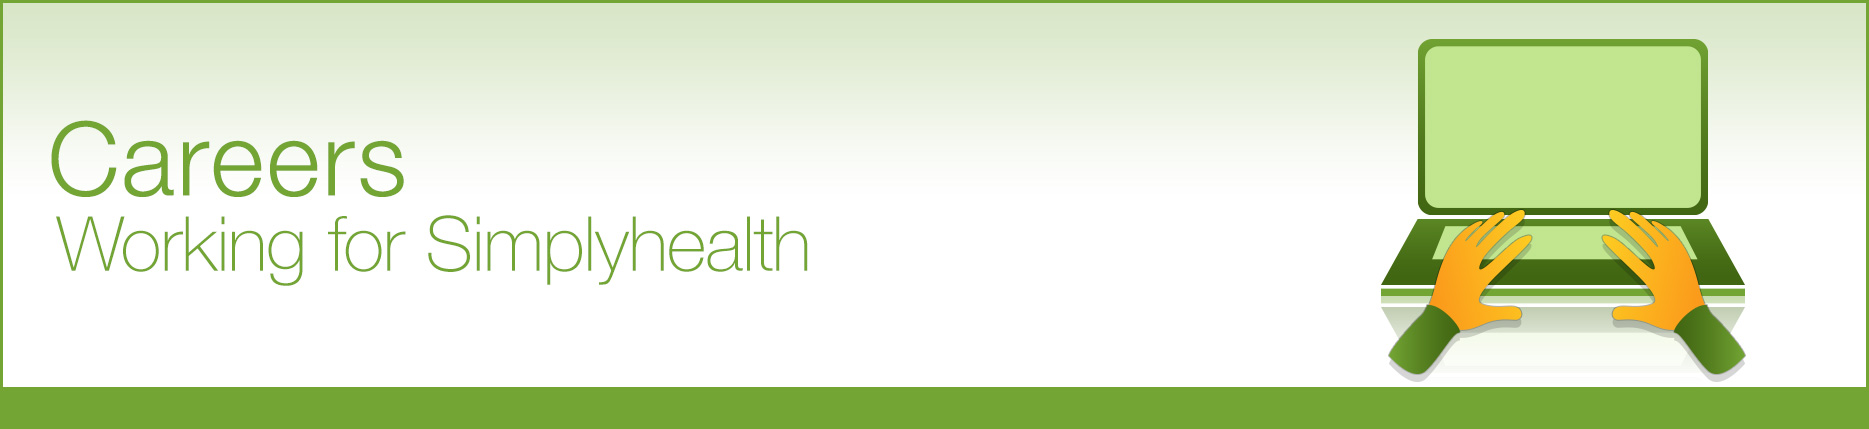 Simplyhealth - Careers banner